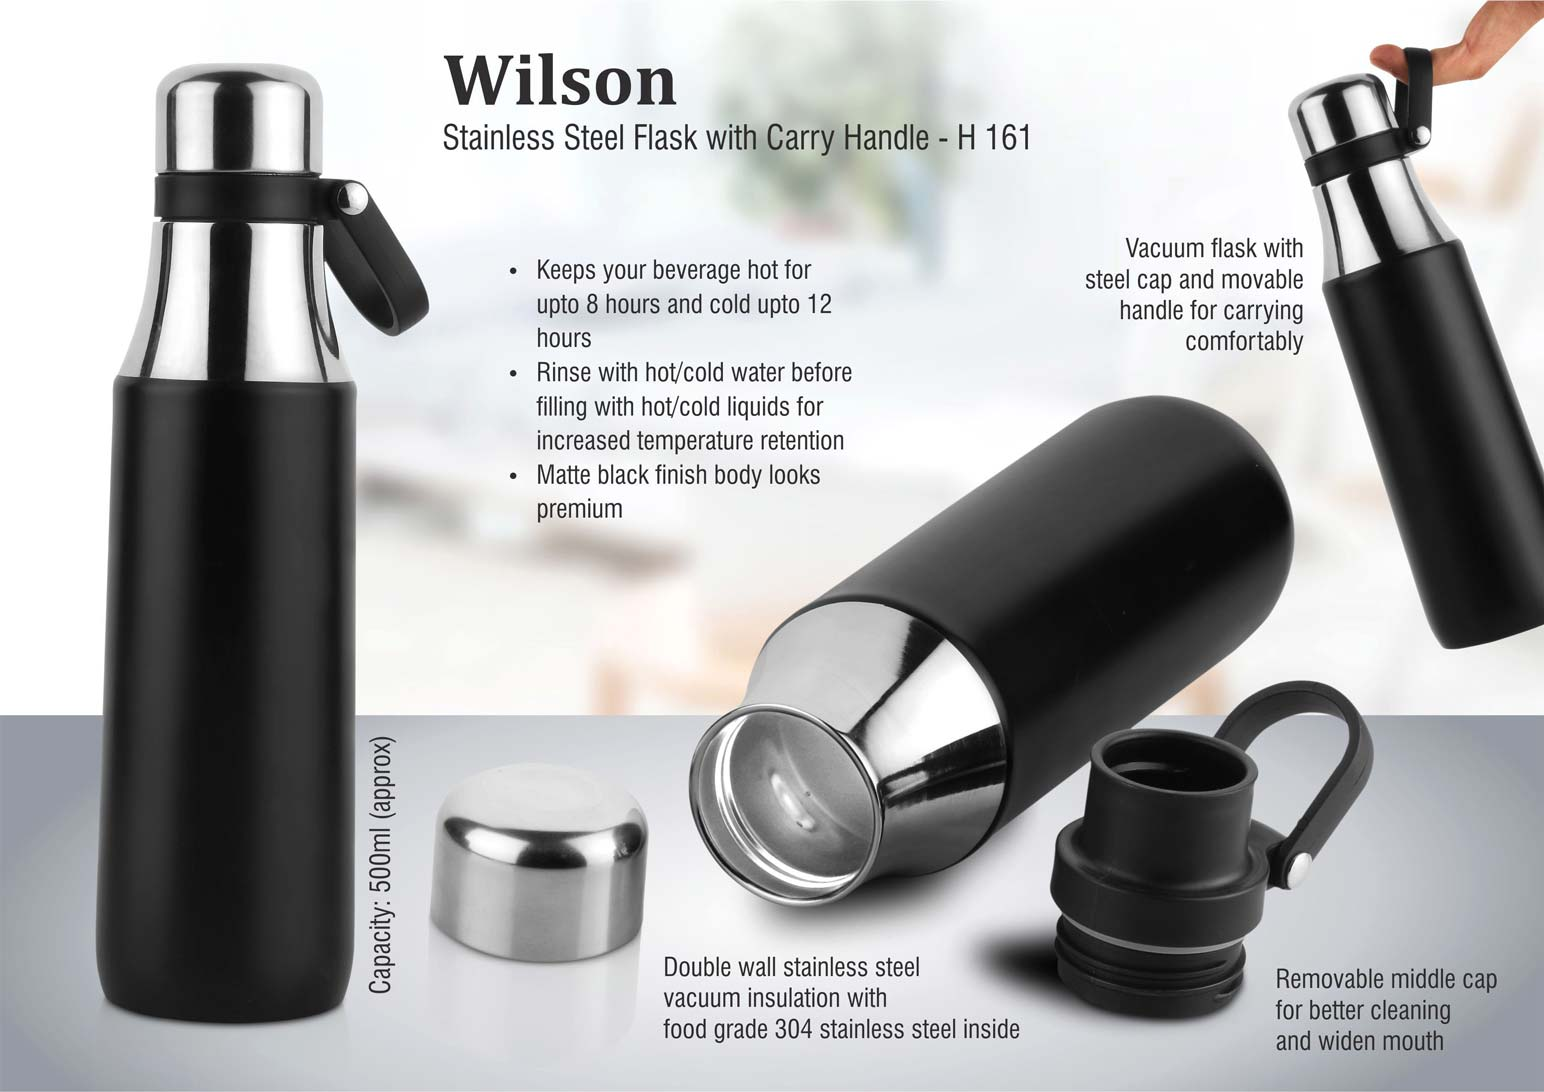 H161 - Wilson: Stainless steel flask with carry handle (500 ml approx)